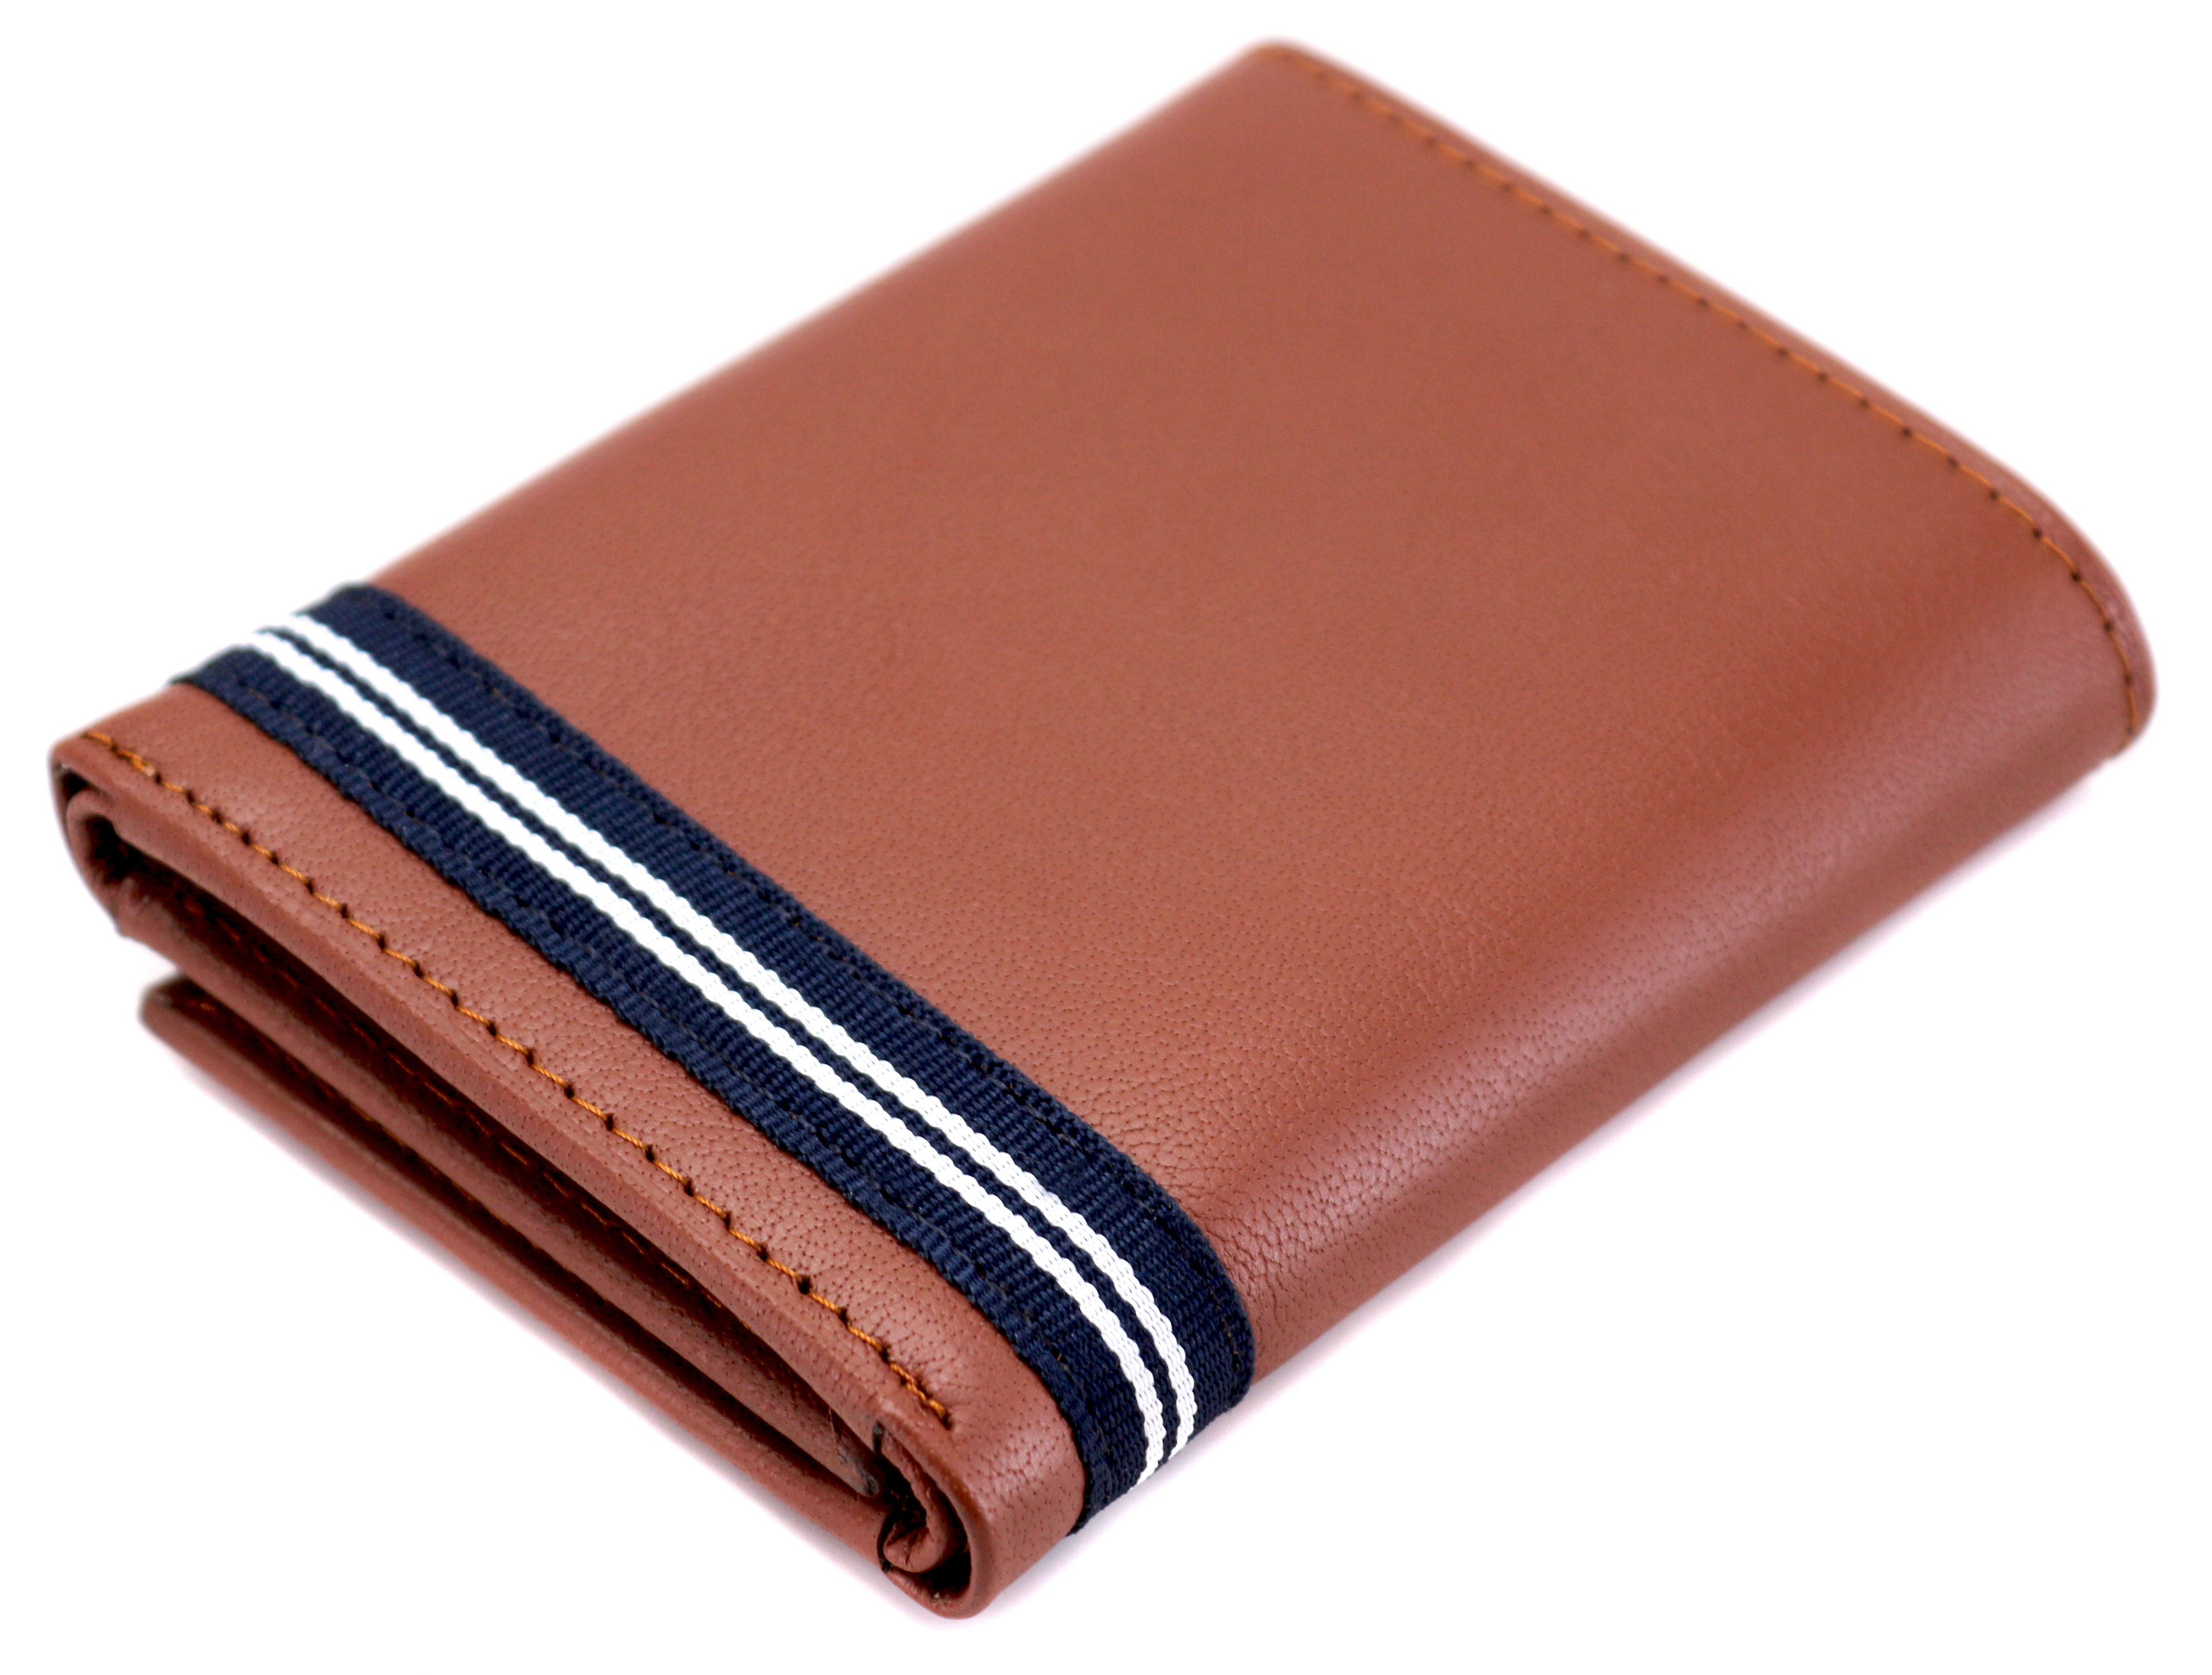 Nautica-Men-039-s-Genuine-Leather-Credit-Card-Id-Holder-Trifold-Wallet thumbnail 22